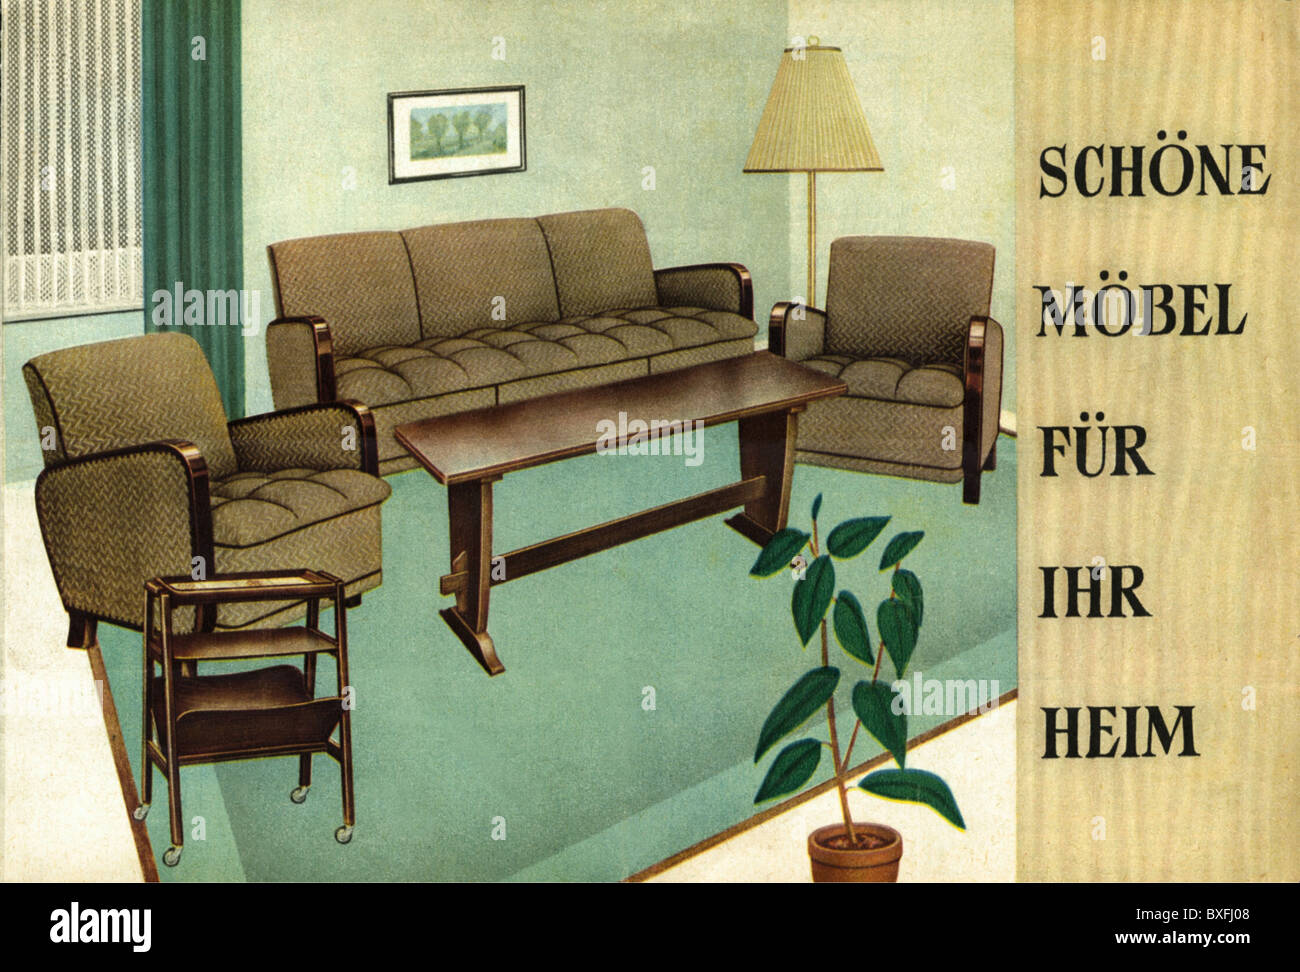 Furniture, Advertising, Oberhausen, Germany, 1954, 1950s, 50s, 20th Century